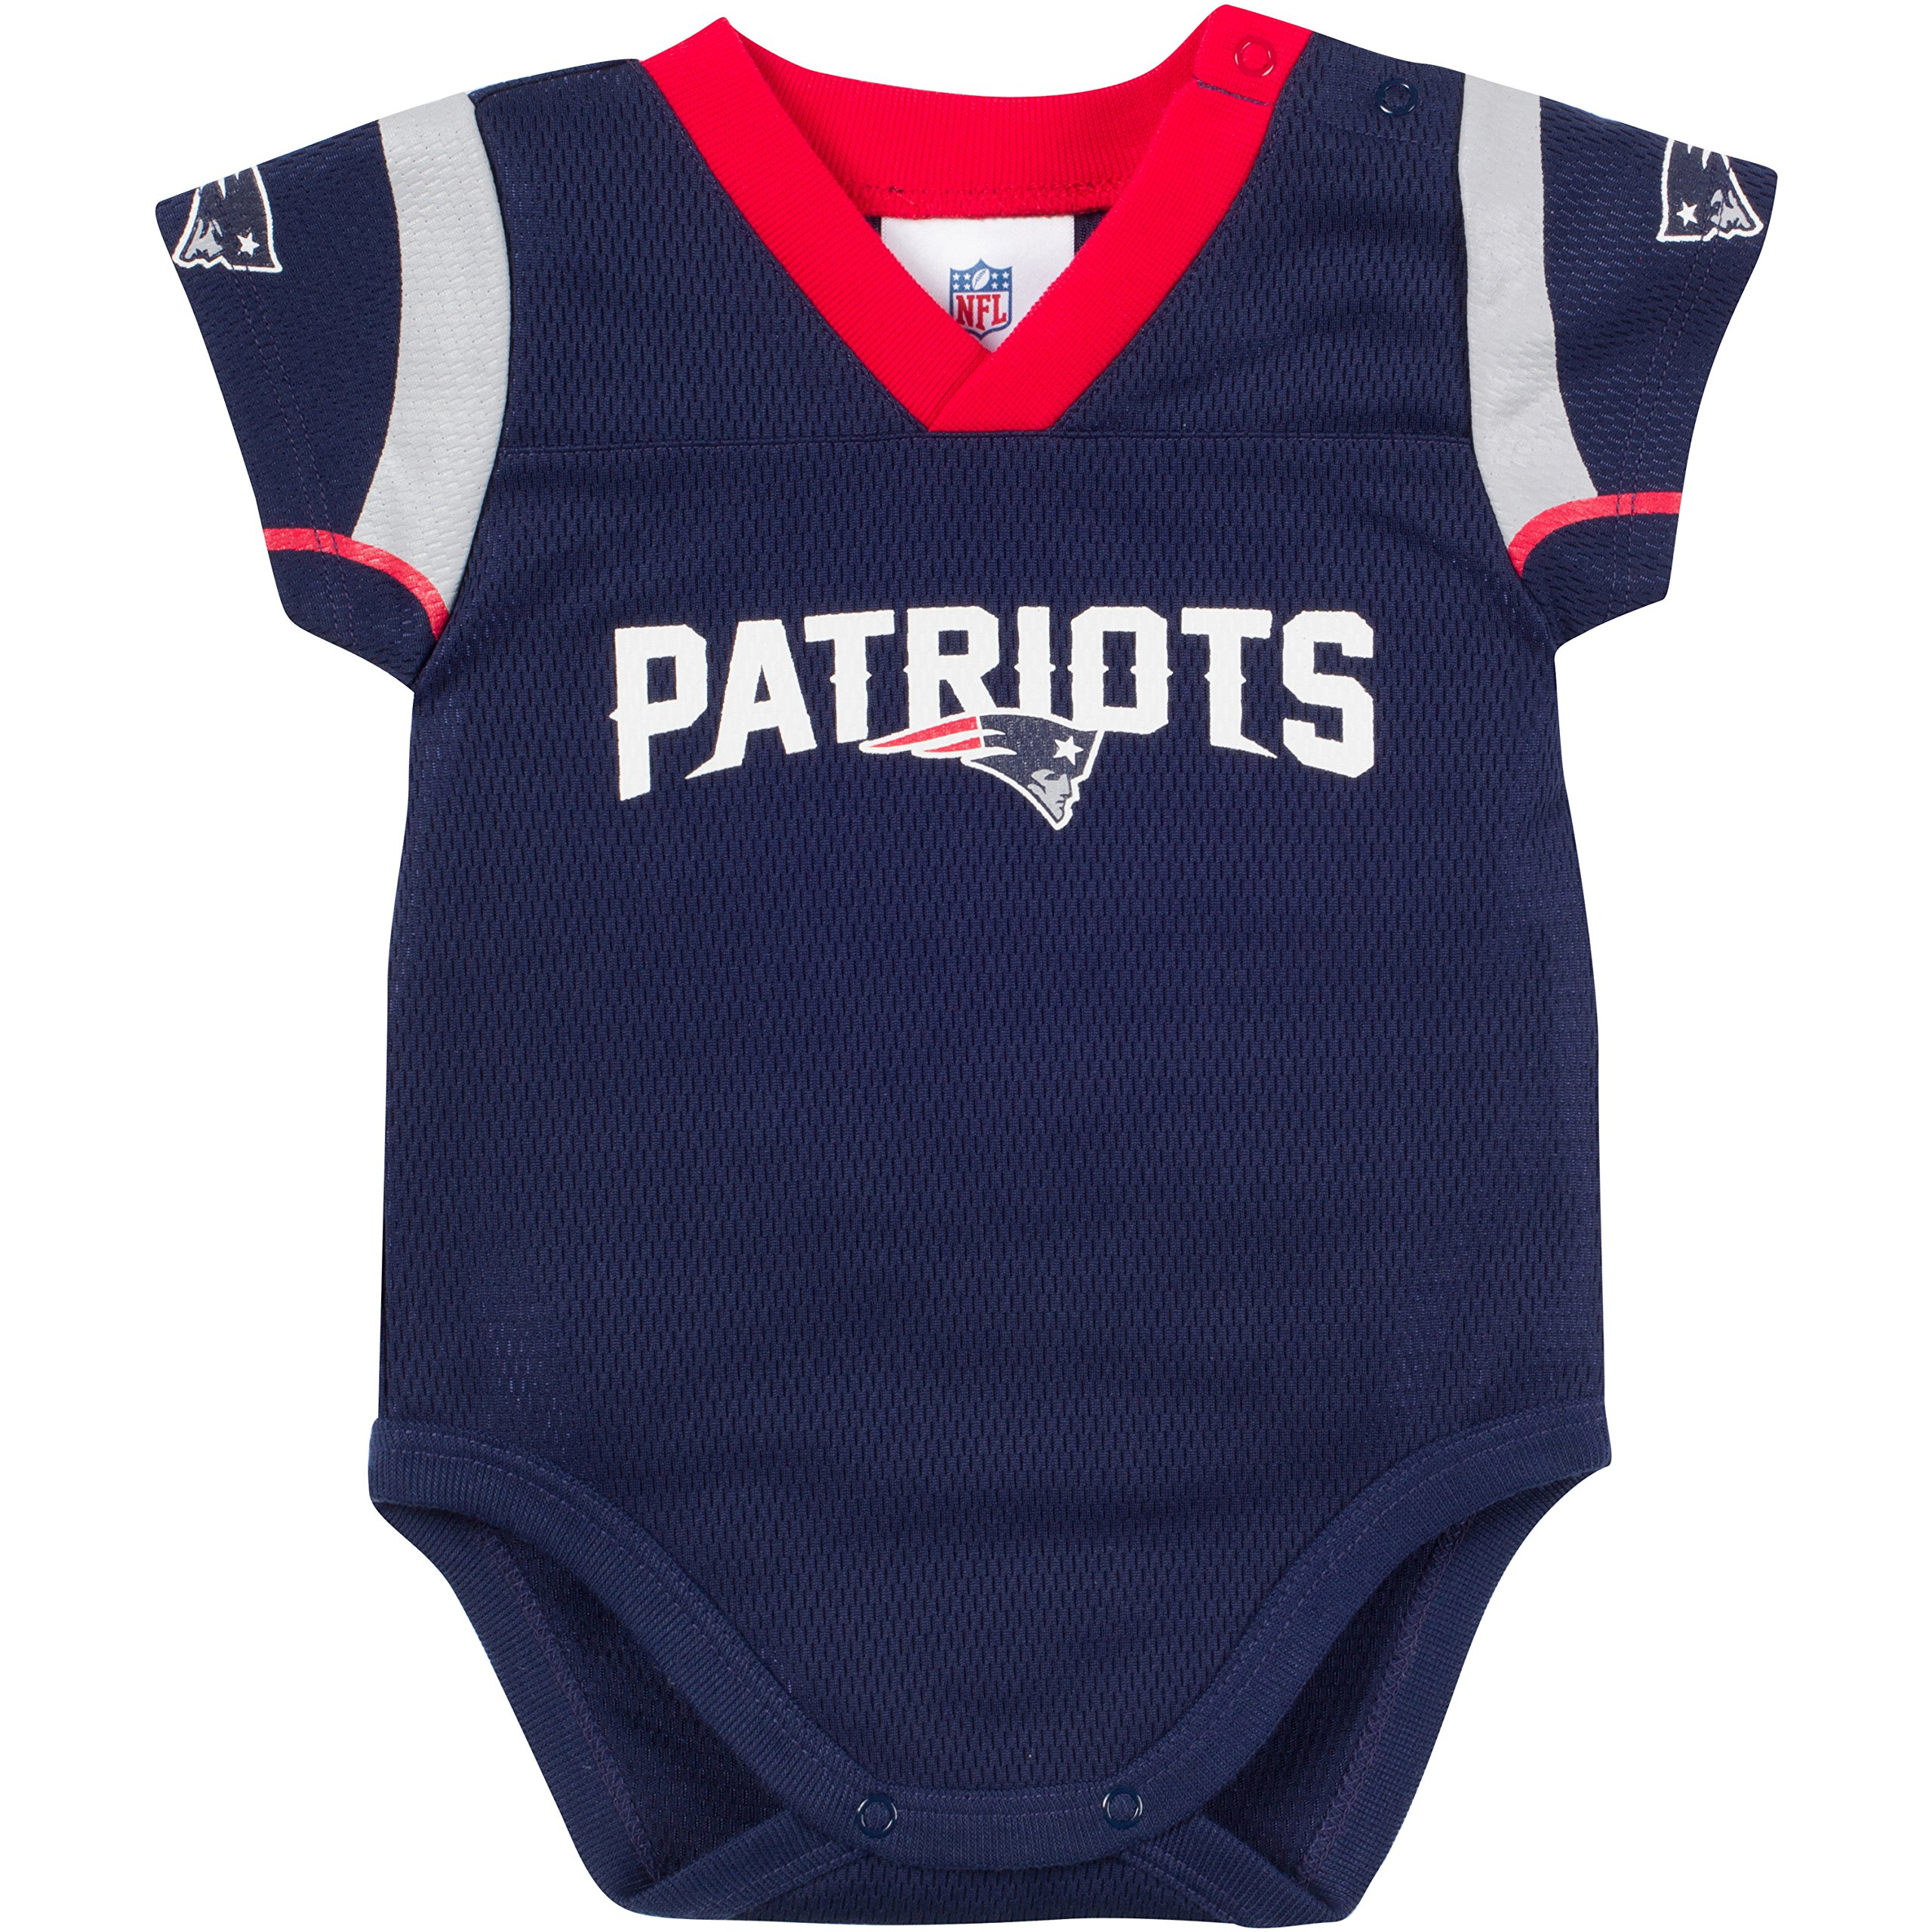 Nfl new england patriots fan shop sports New england patriots shirts